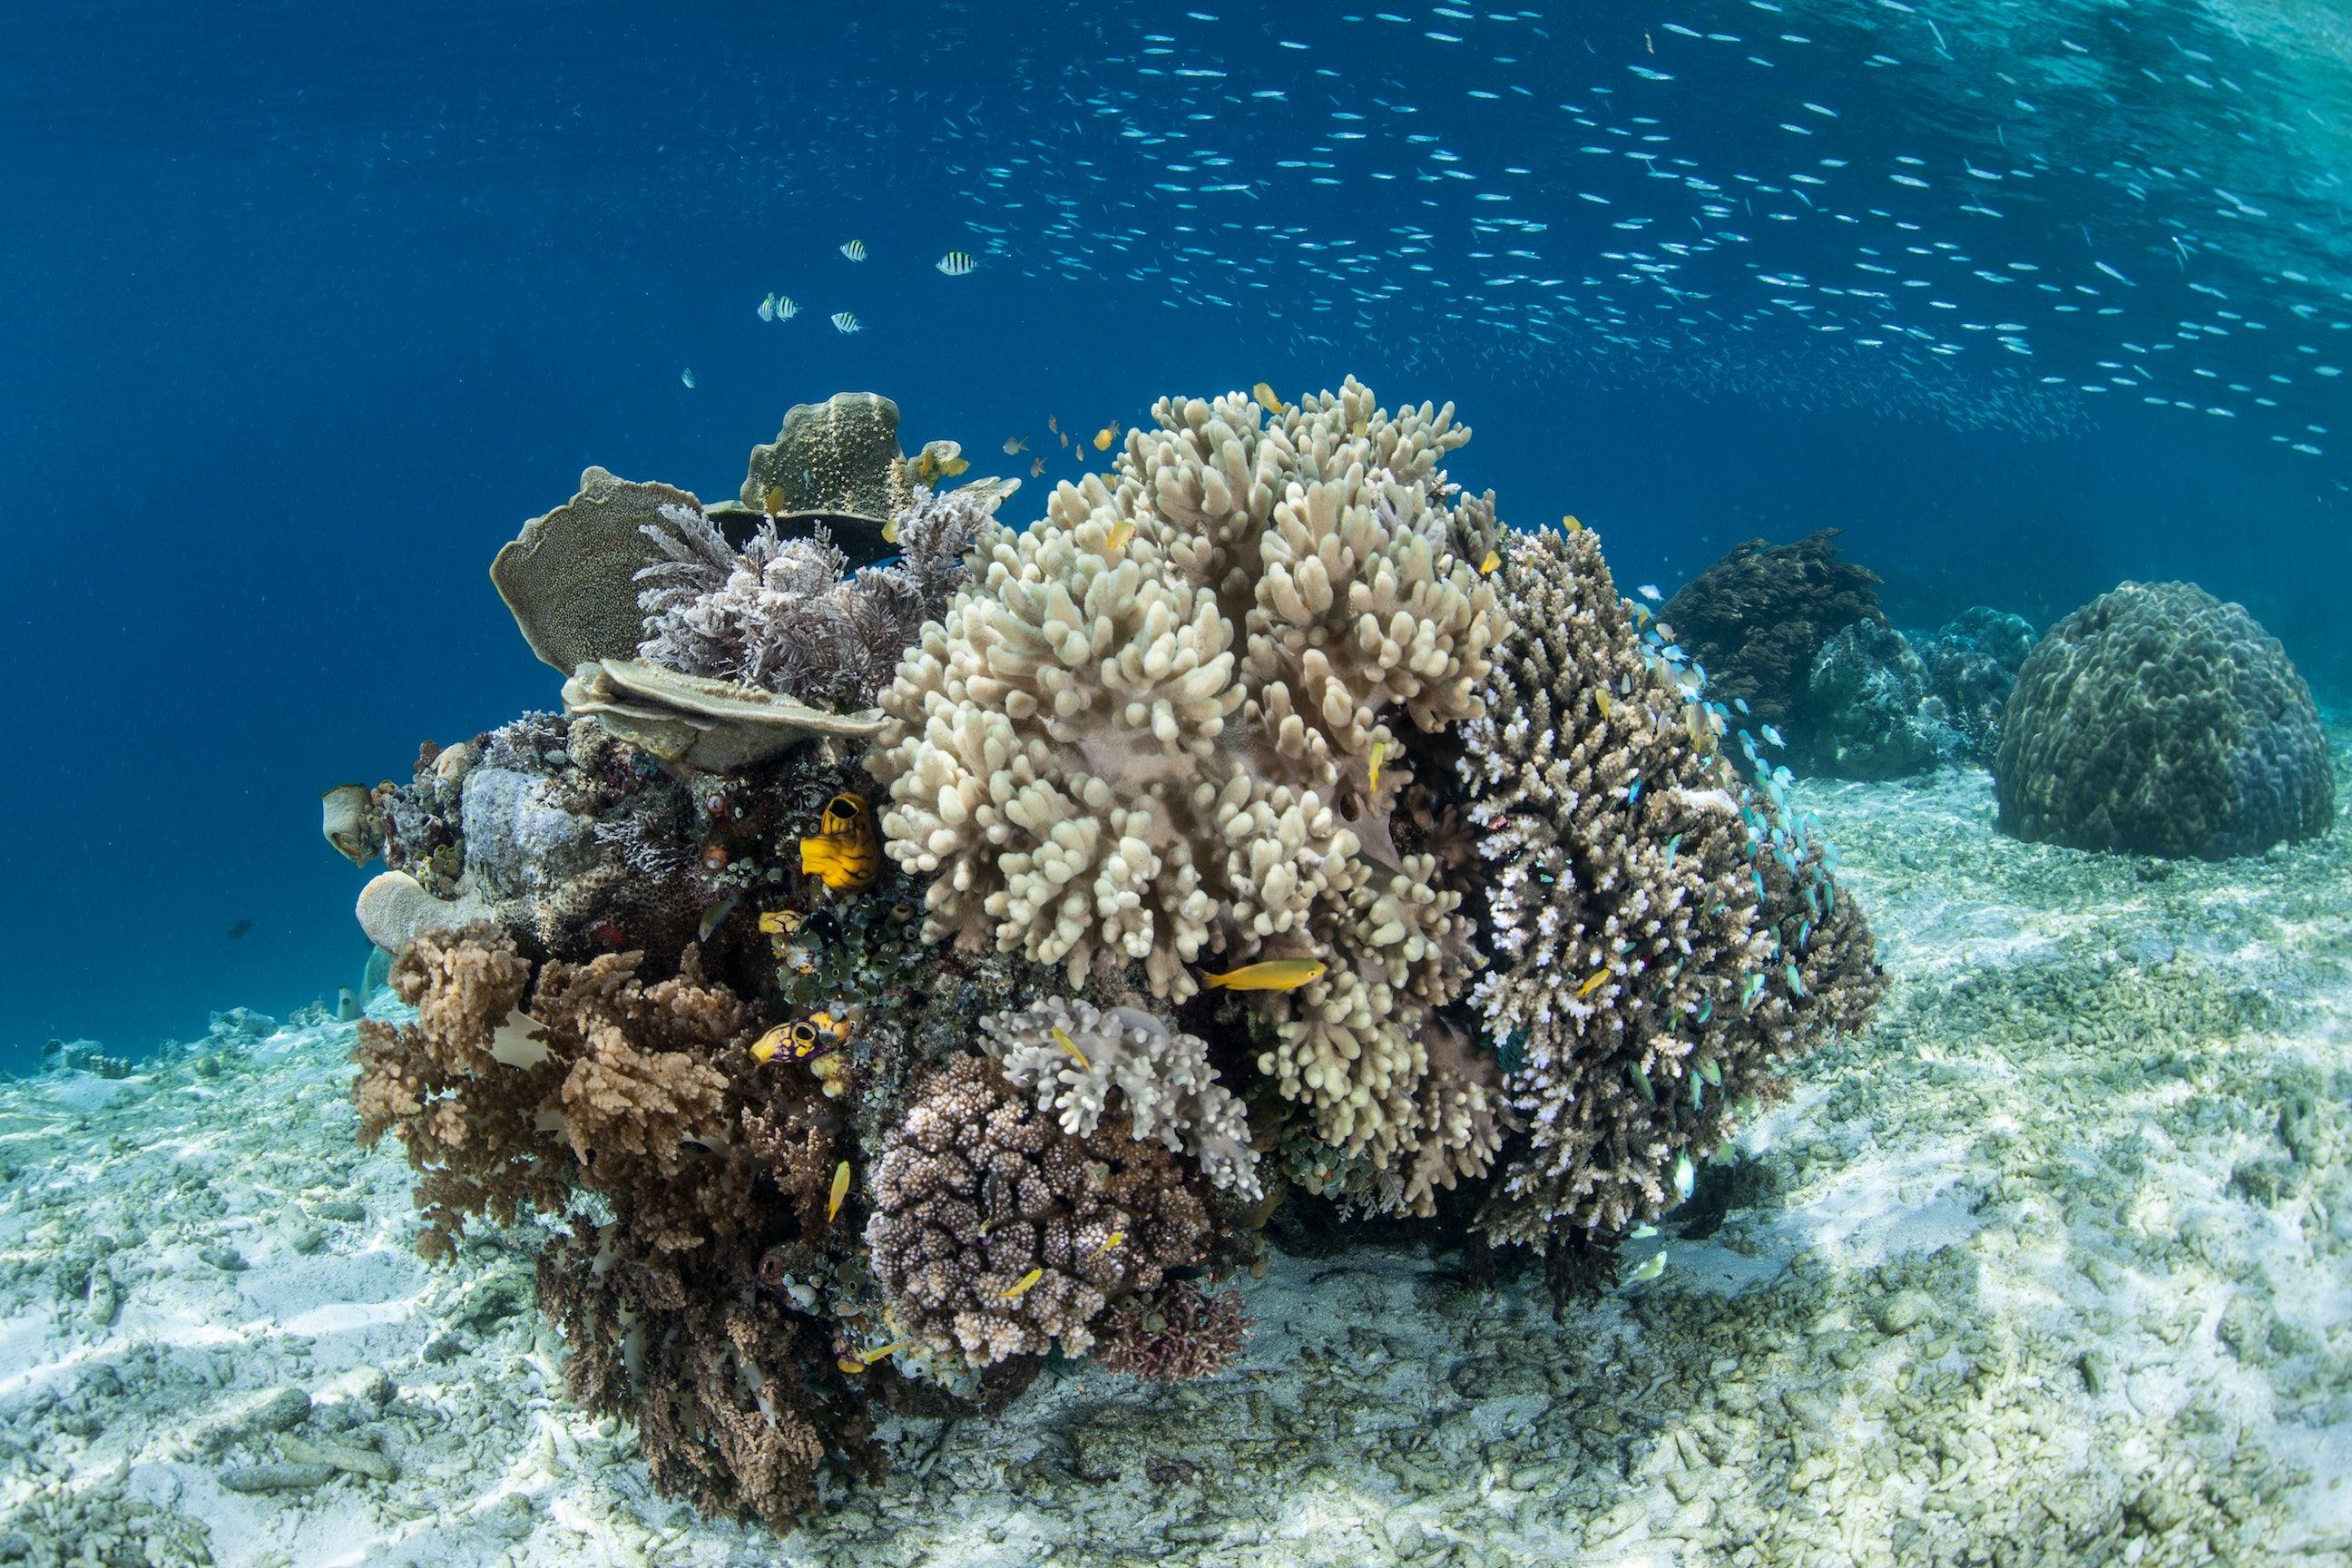 Raja Ampat is rich with coral and marine life.